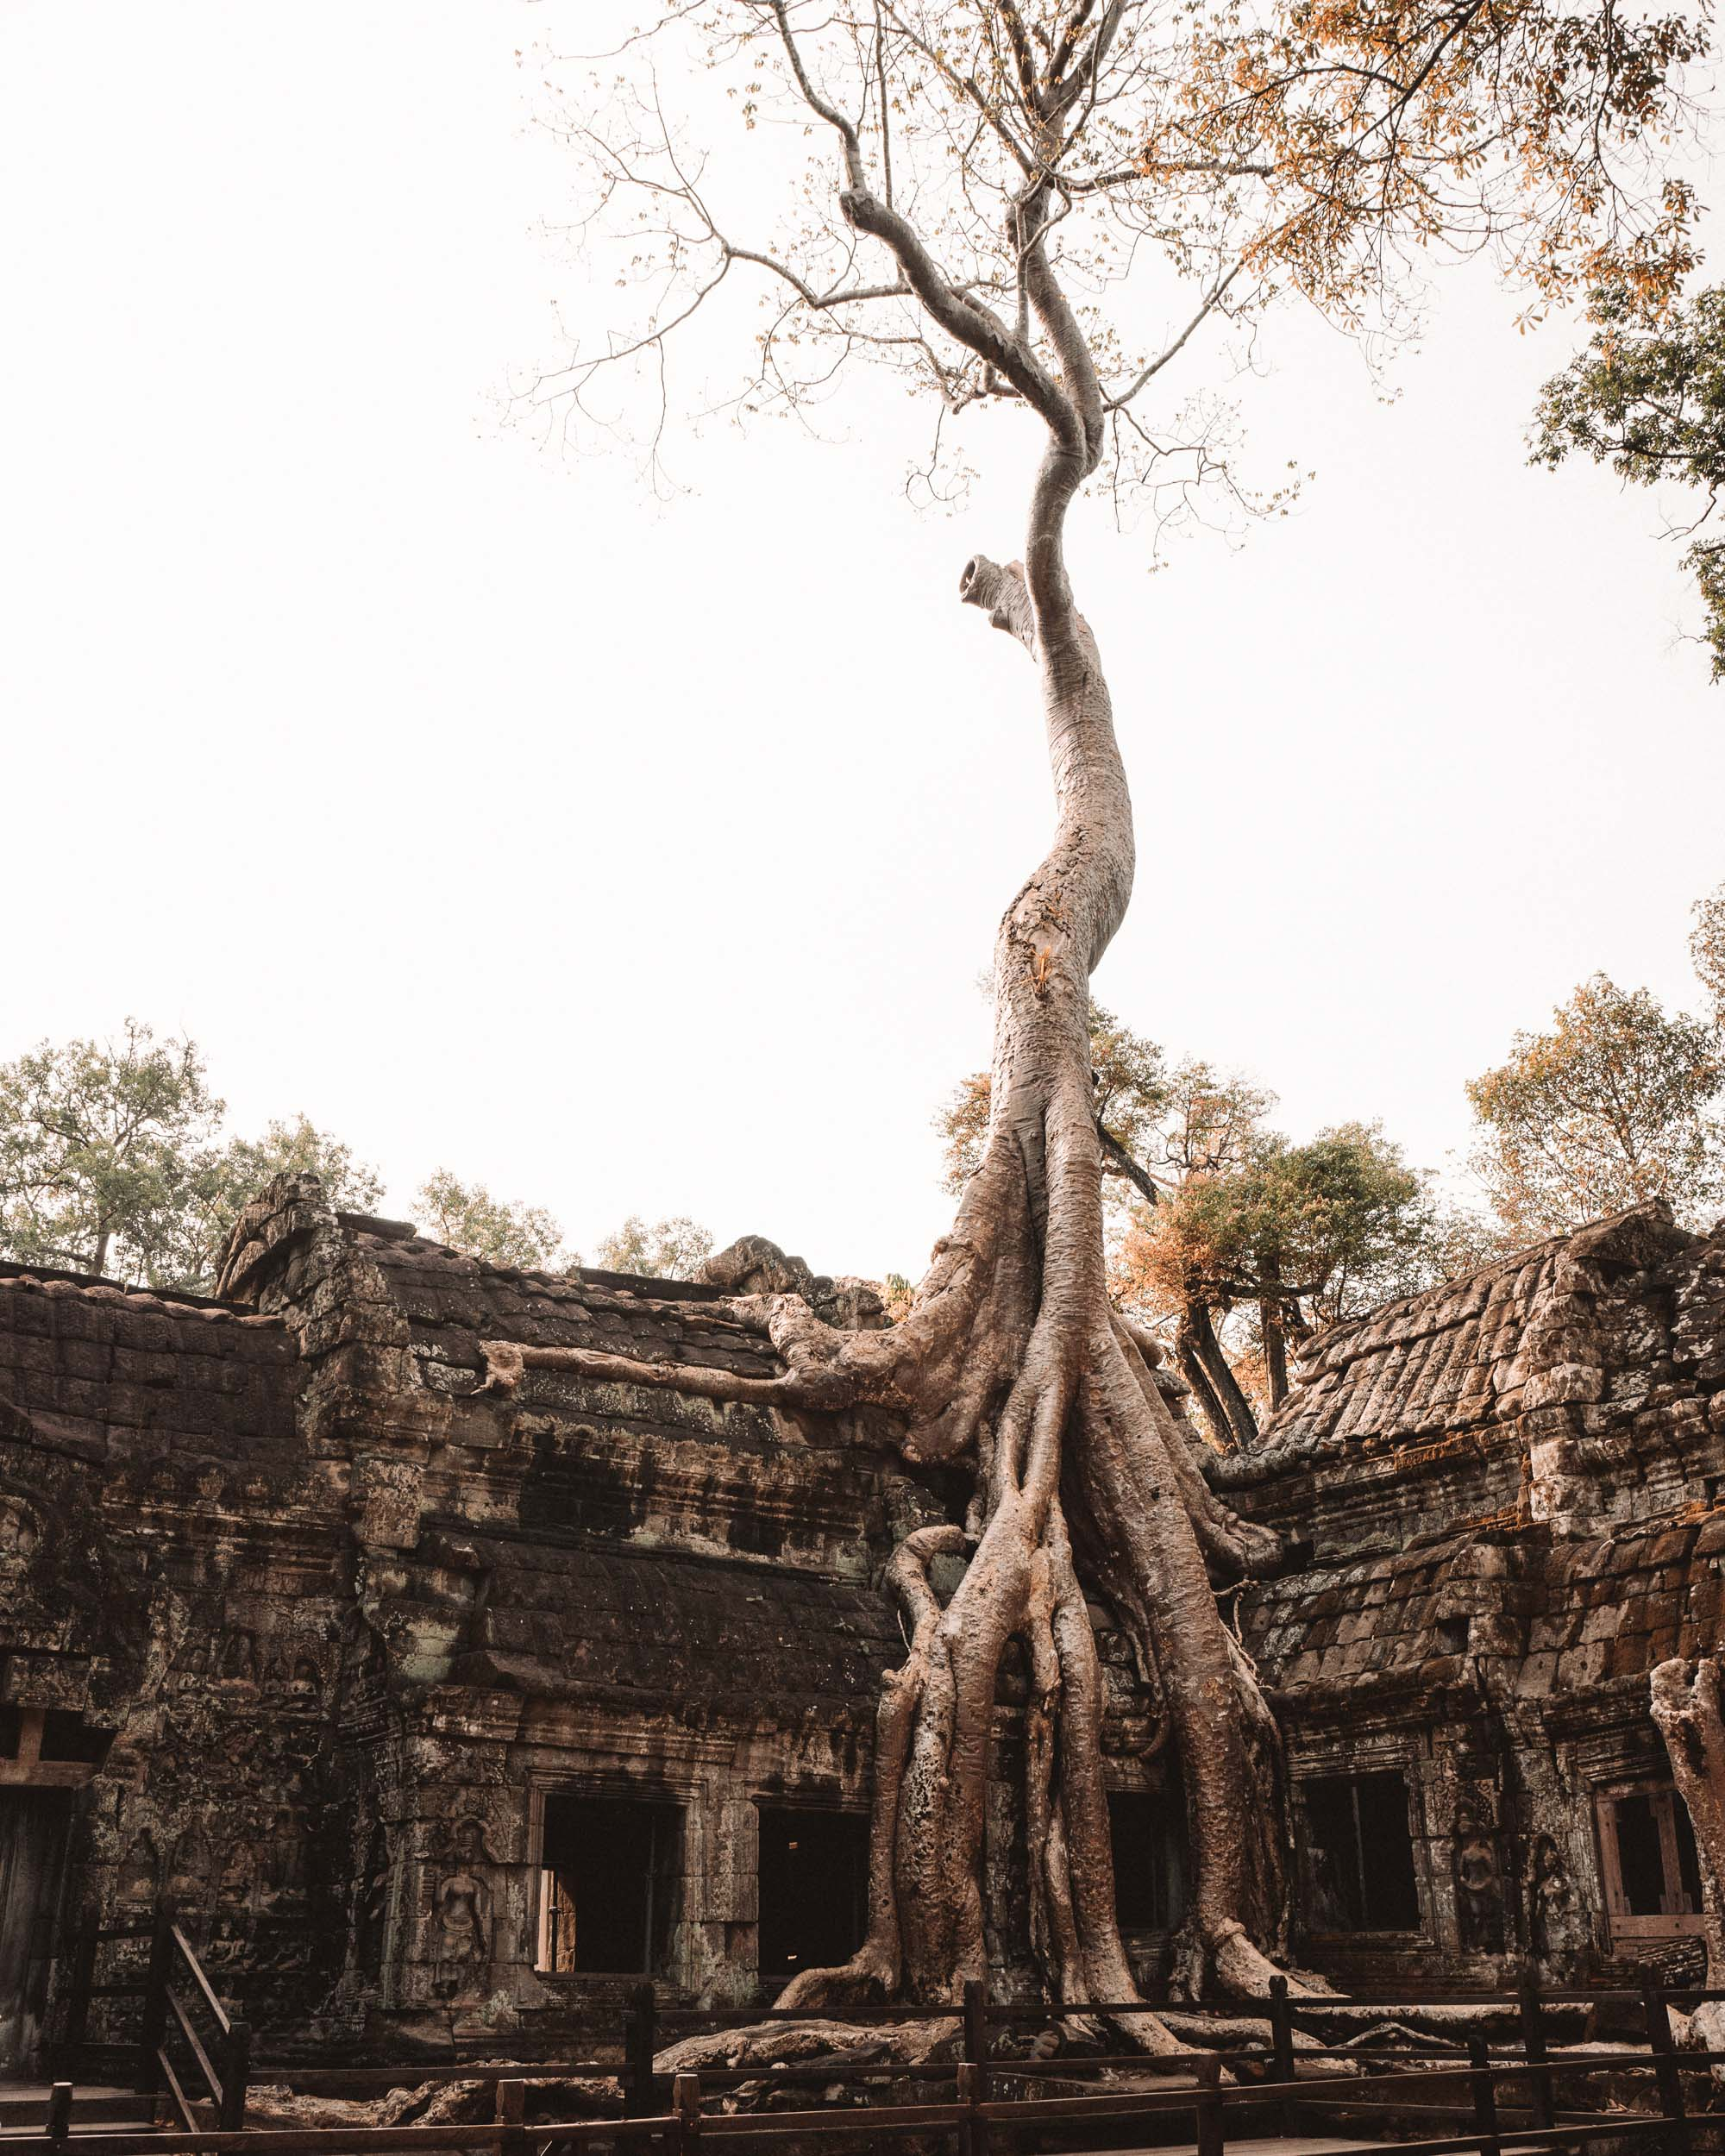 Ta Prohm temple with trees in Angkor Wat Cambodia